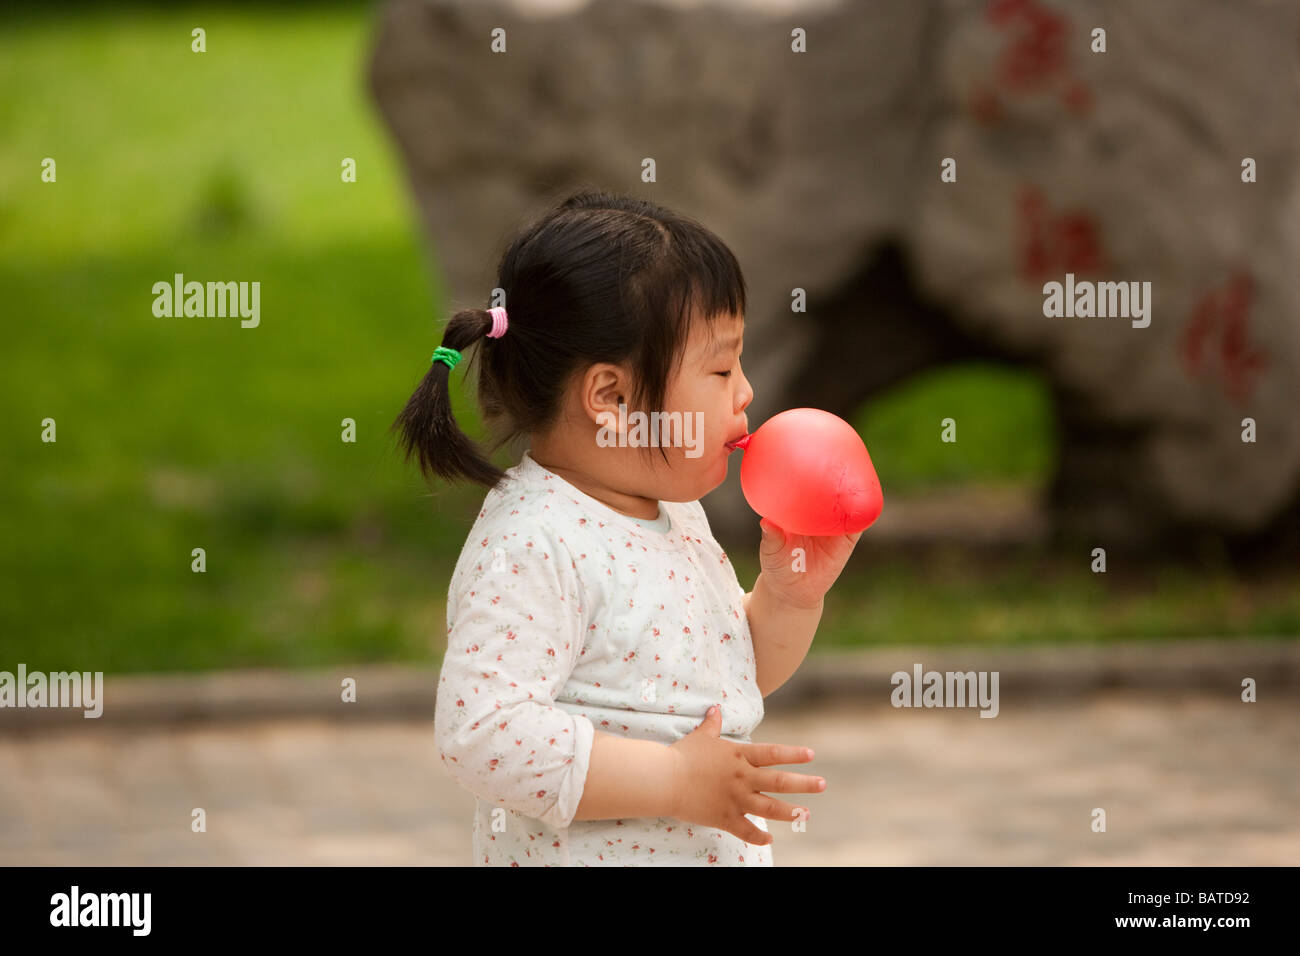 Beijing, China: A small girl blows up a red baloon  in the park by  a university campus. - Stock Image